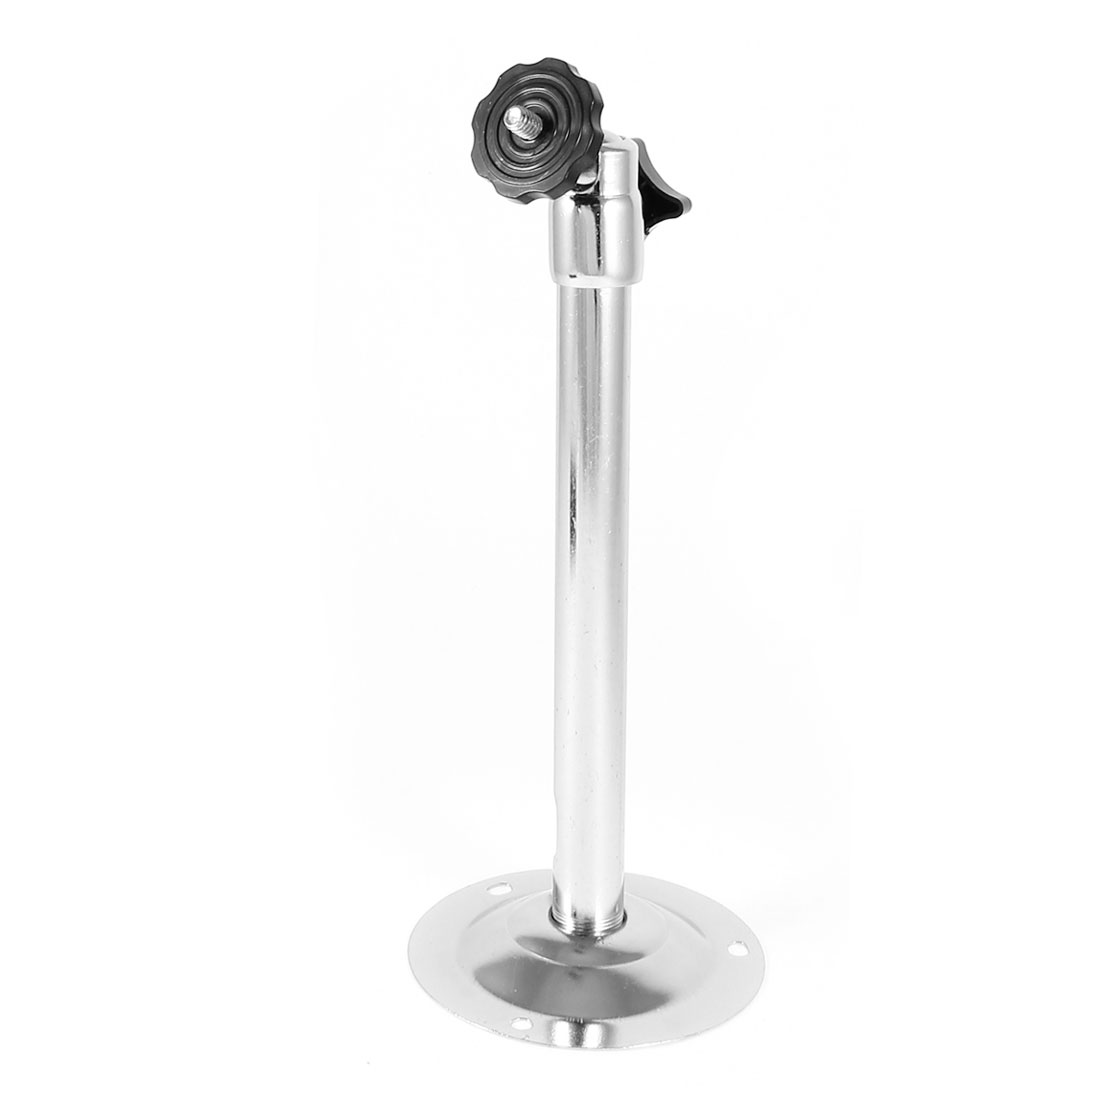 Outdoor CCTV Security Camera Aluminum Round Base Mount Bracket Stand 23.5cm